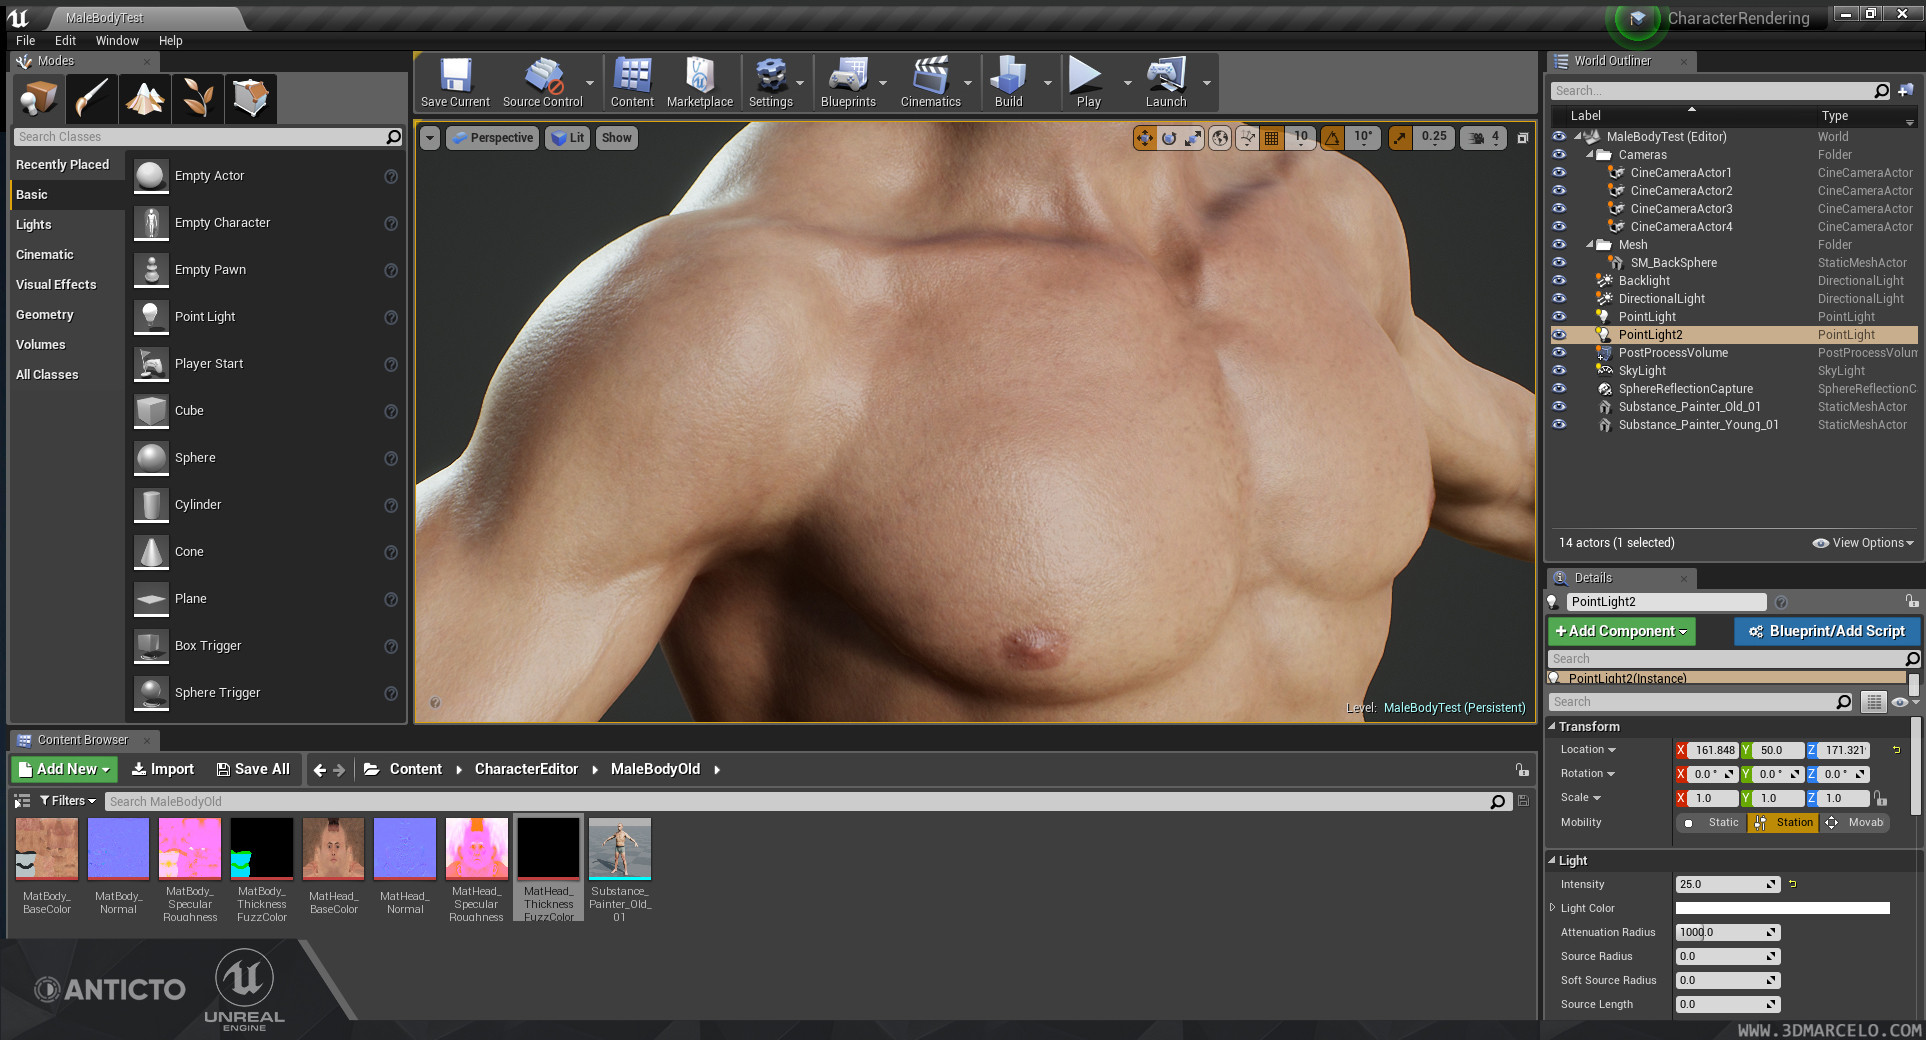 Unreal Engine 4 - Skin Shader detail